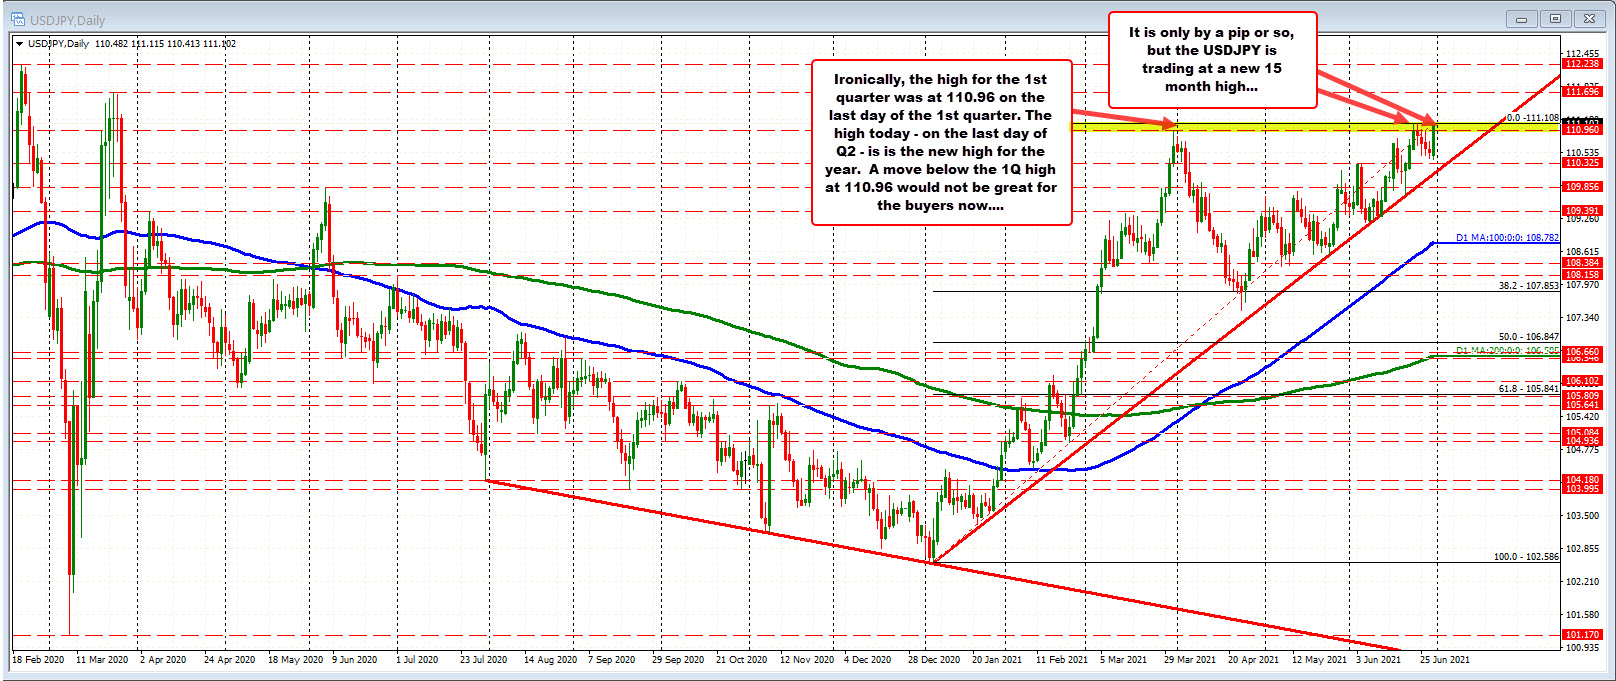 15 month high for the USDJPY